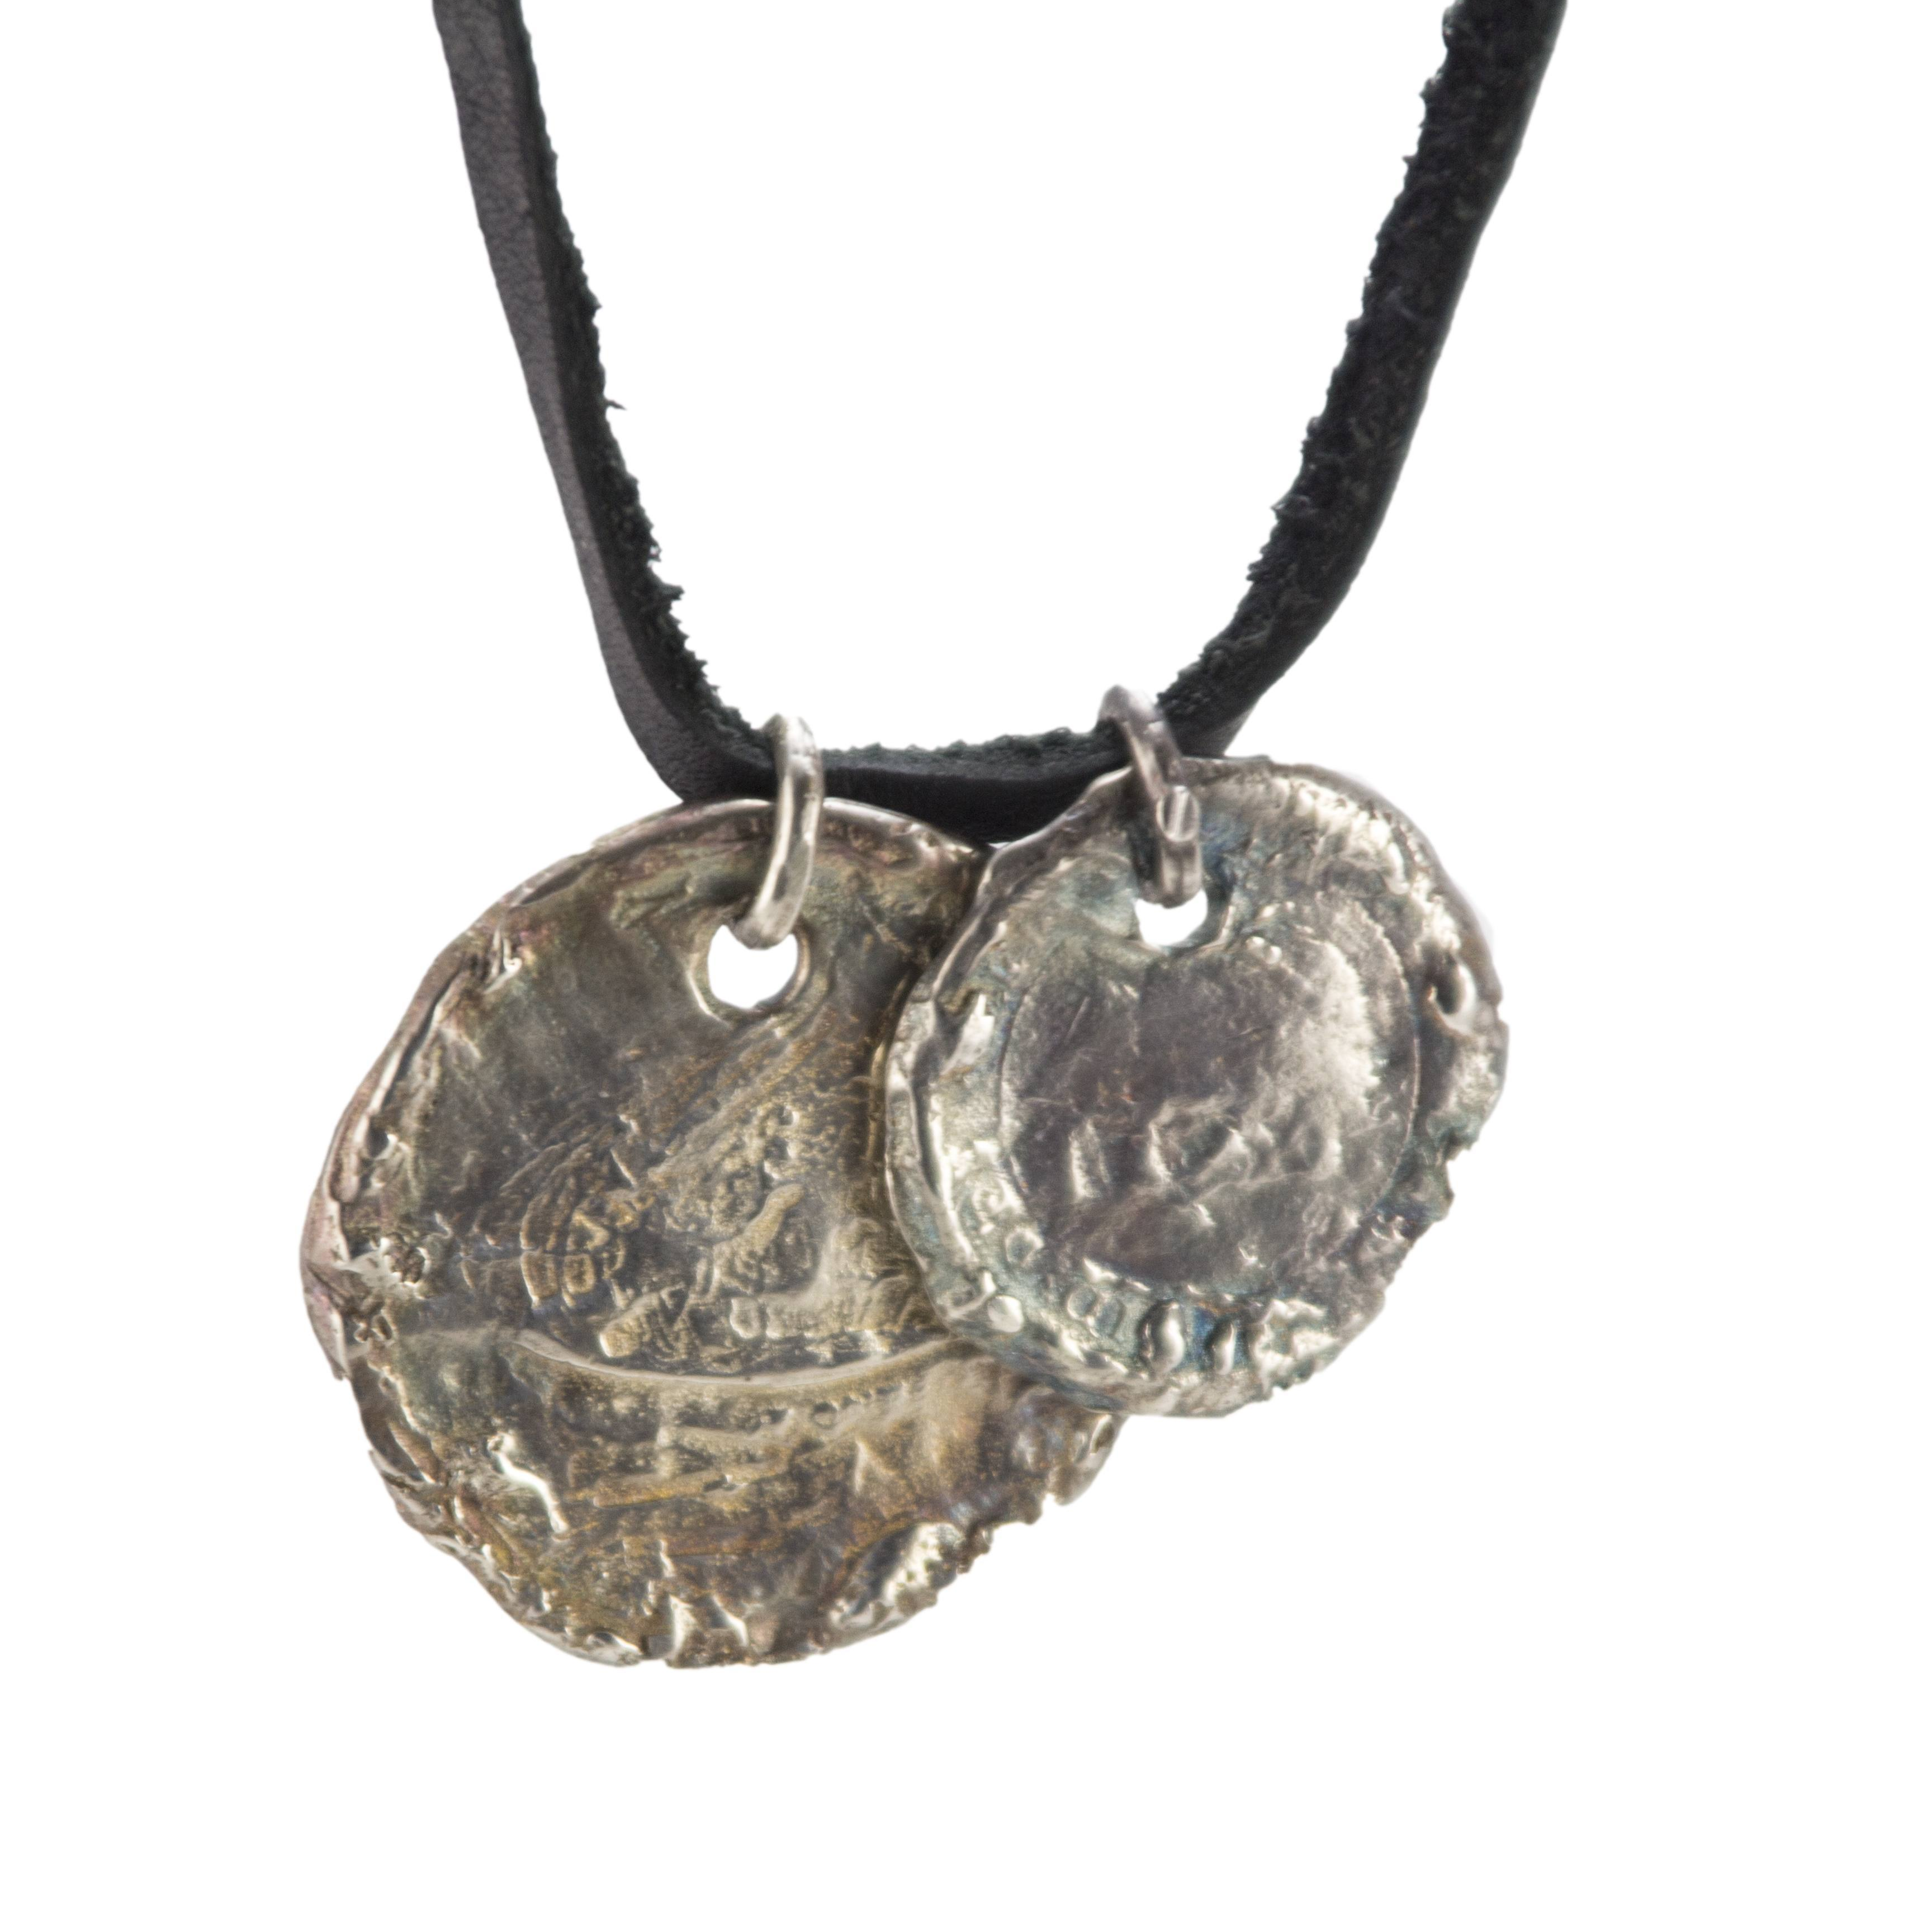 chain hangs coin ancient karat yellow from at gold j for necklace sale drachm fullsizeoutput id master jewelry necklaces silver parthian pendant